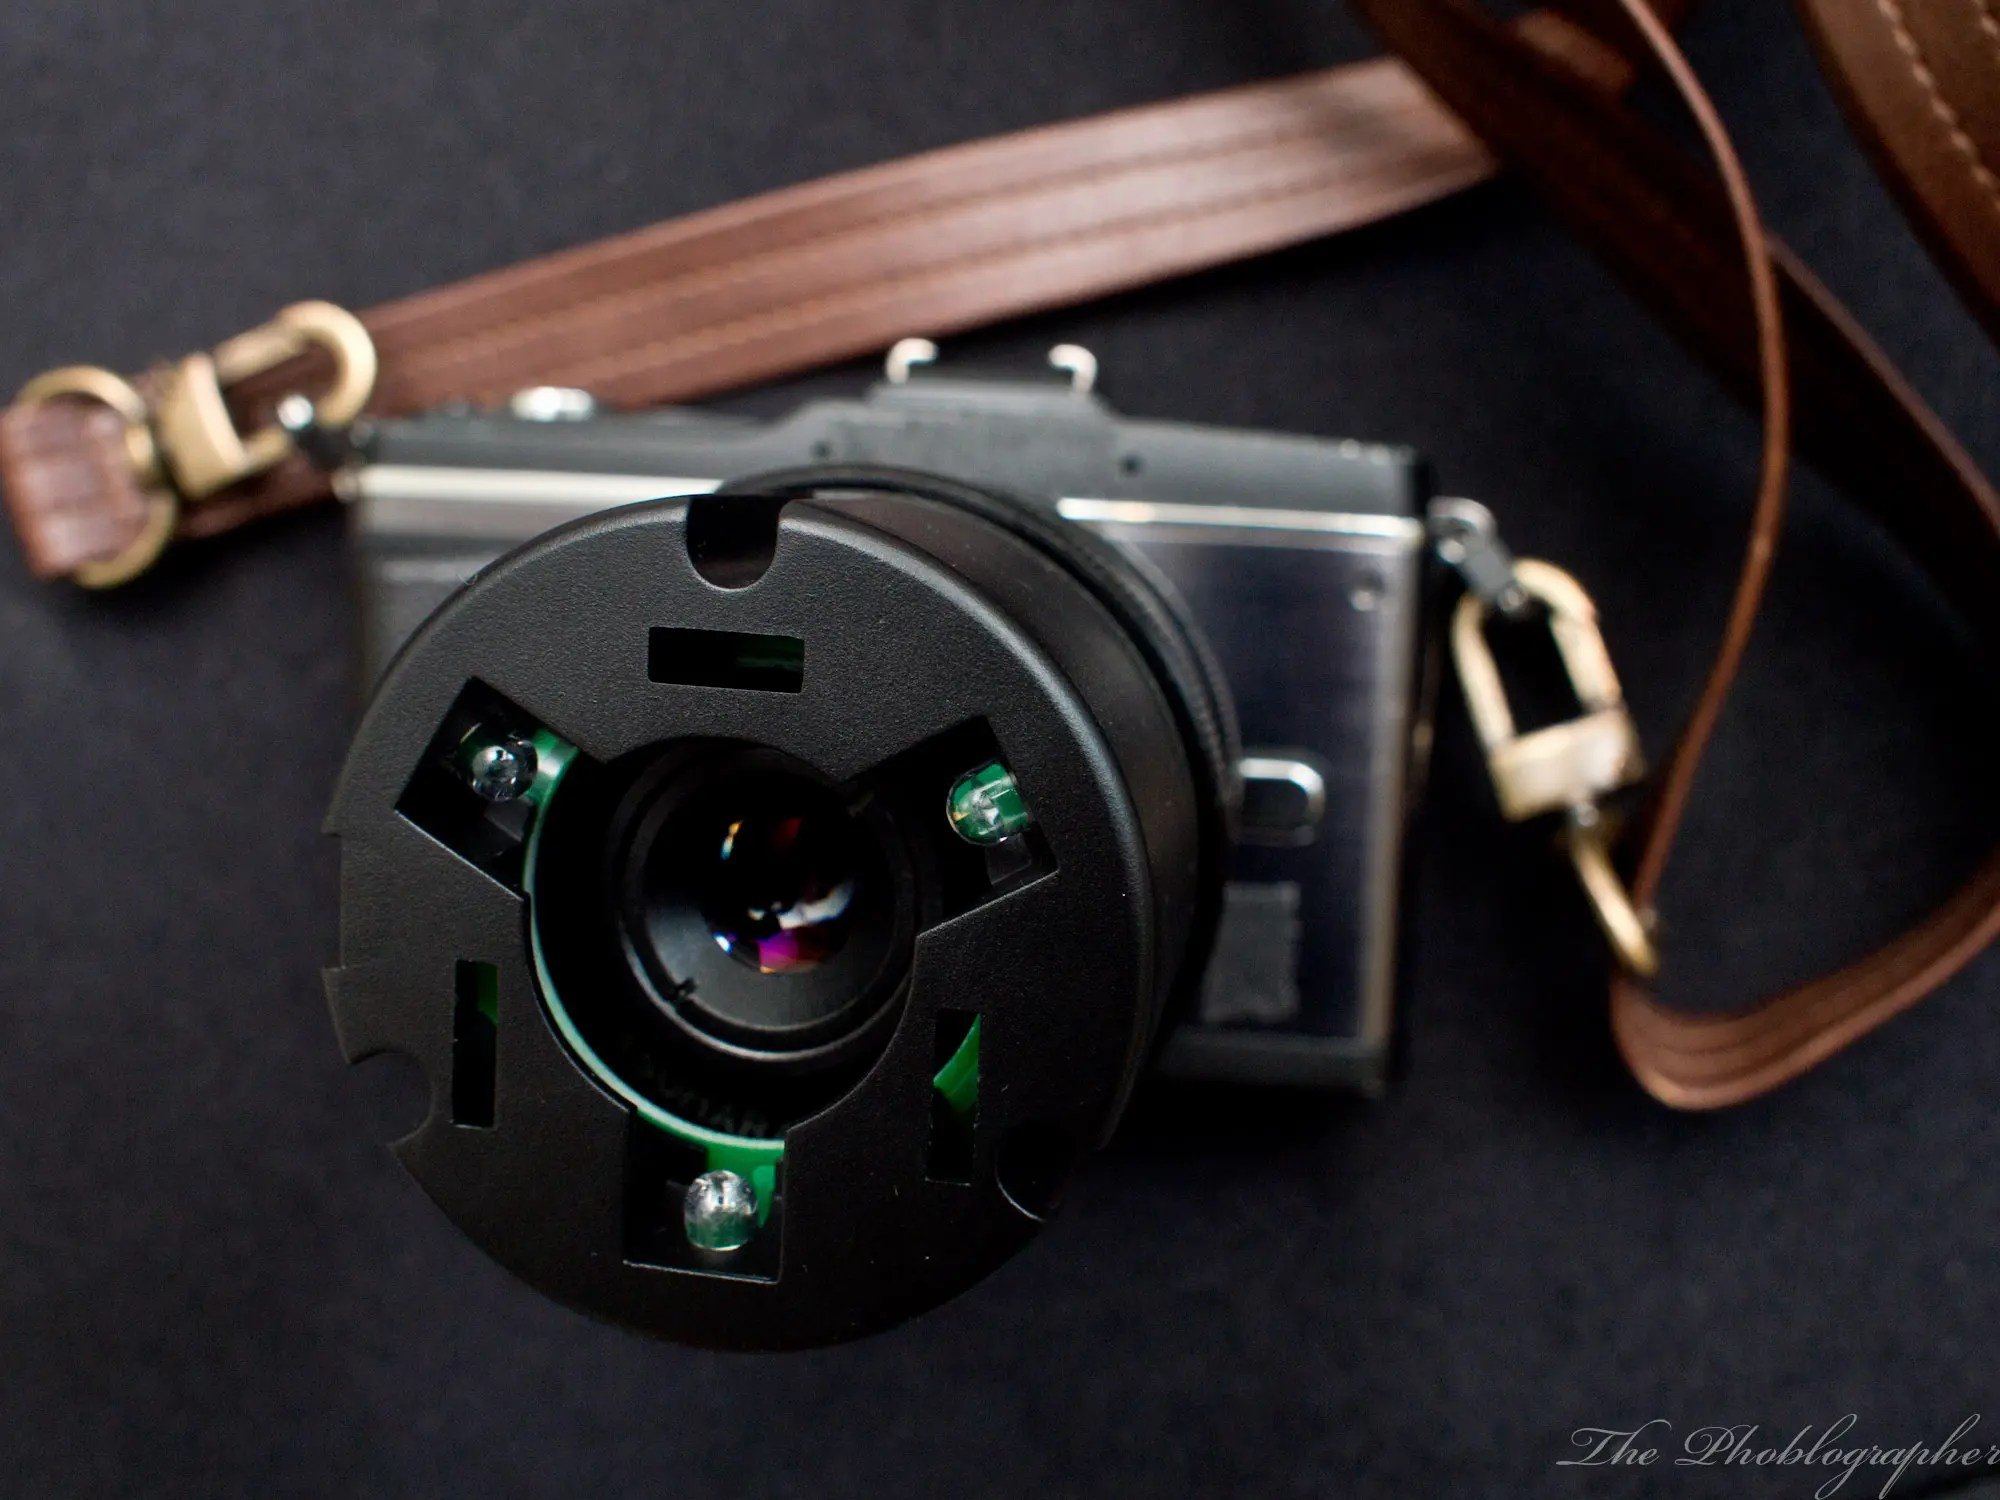 Chris Gampat The Phoblographer Yasuhara Nanohax5 hands on review (2 of 16)